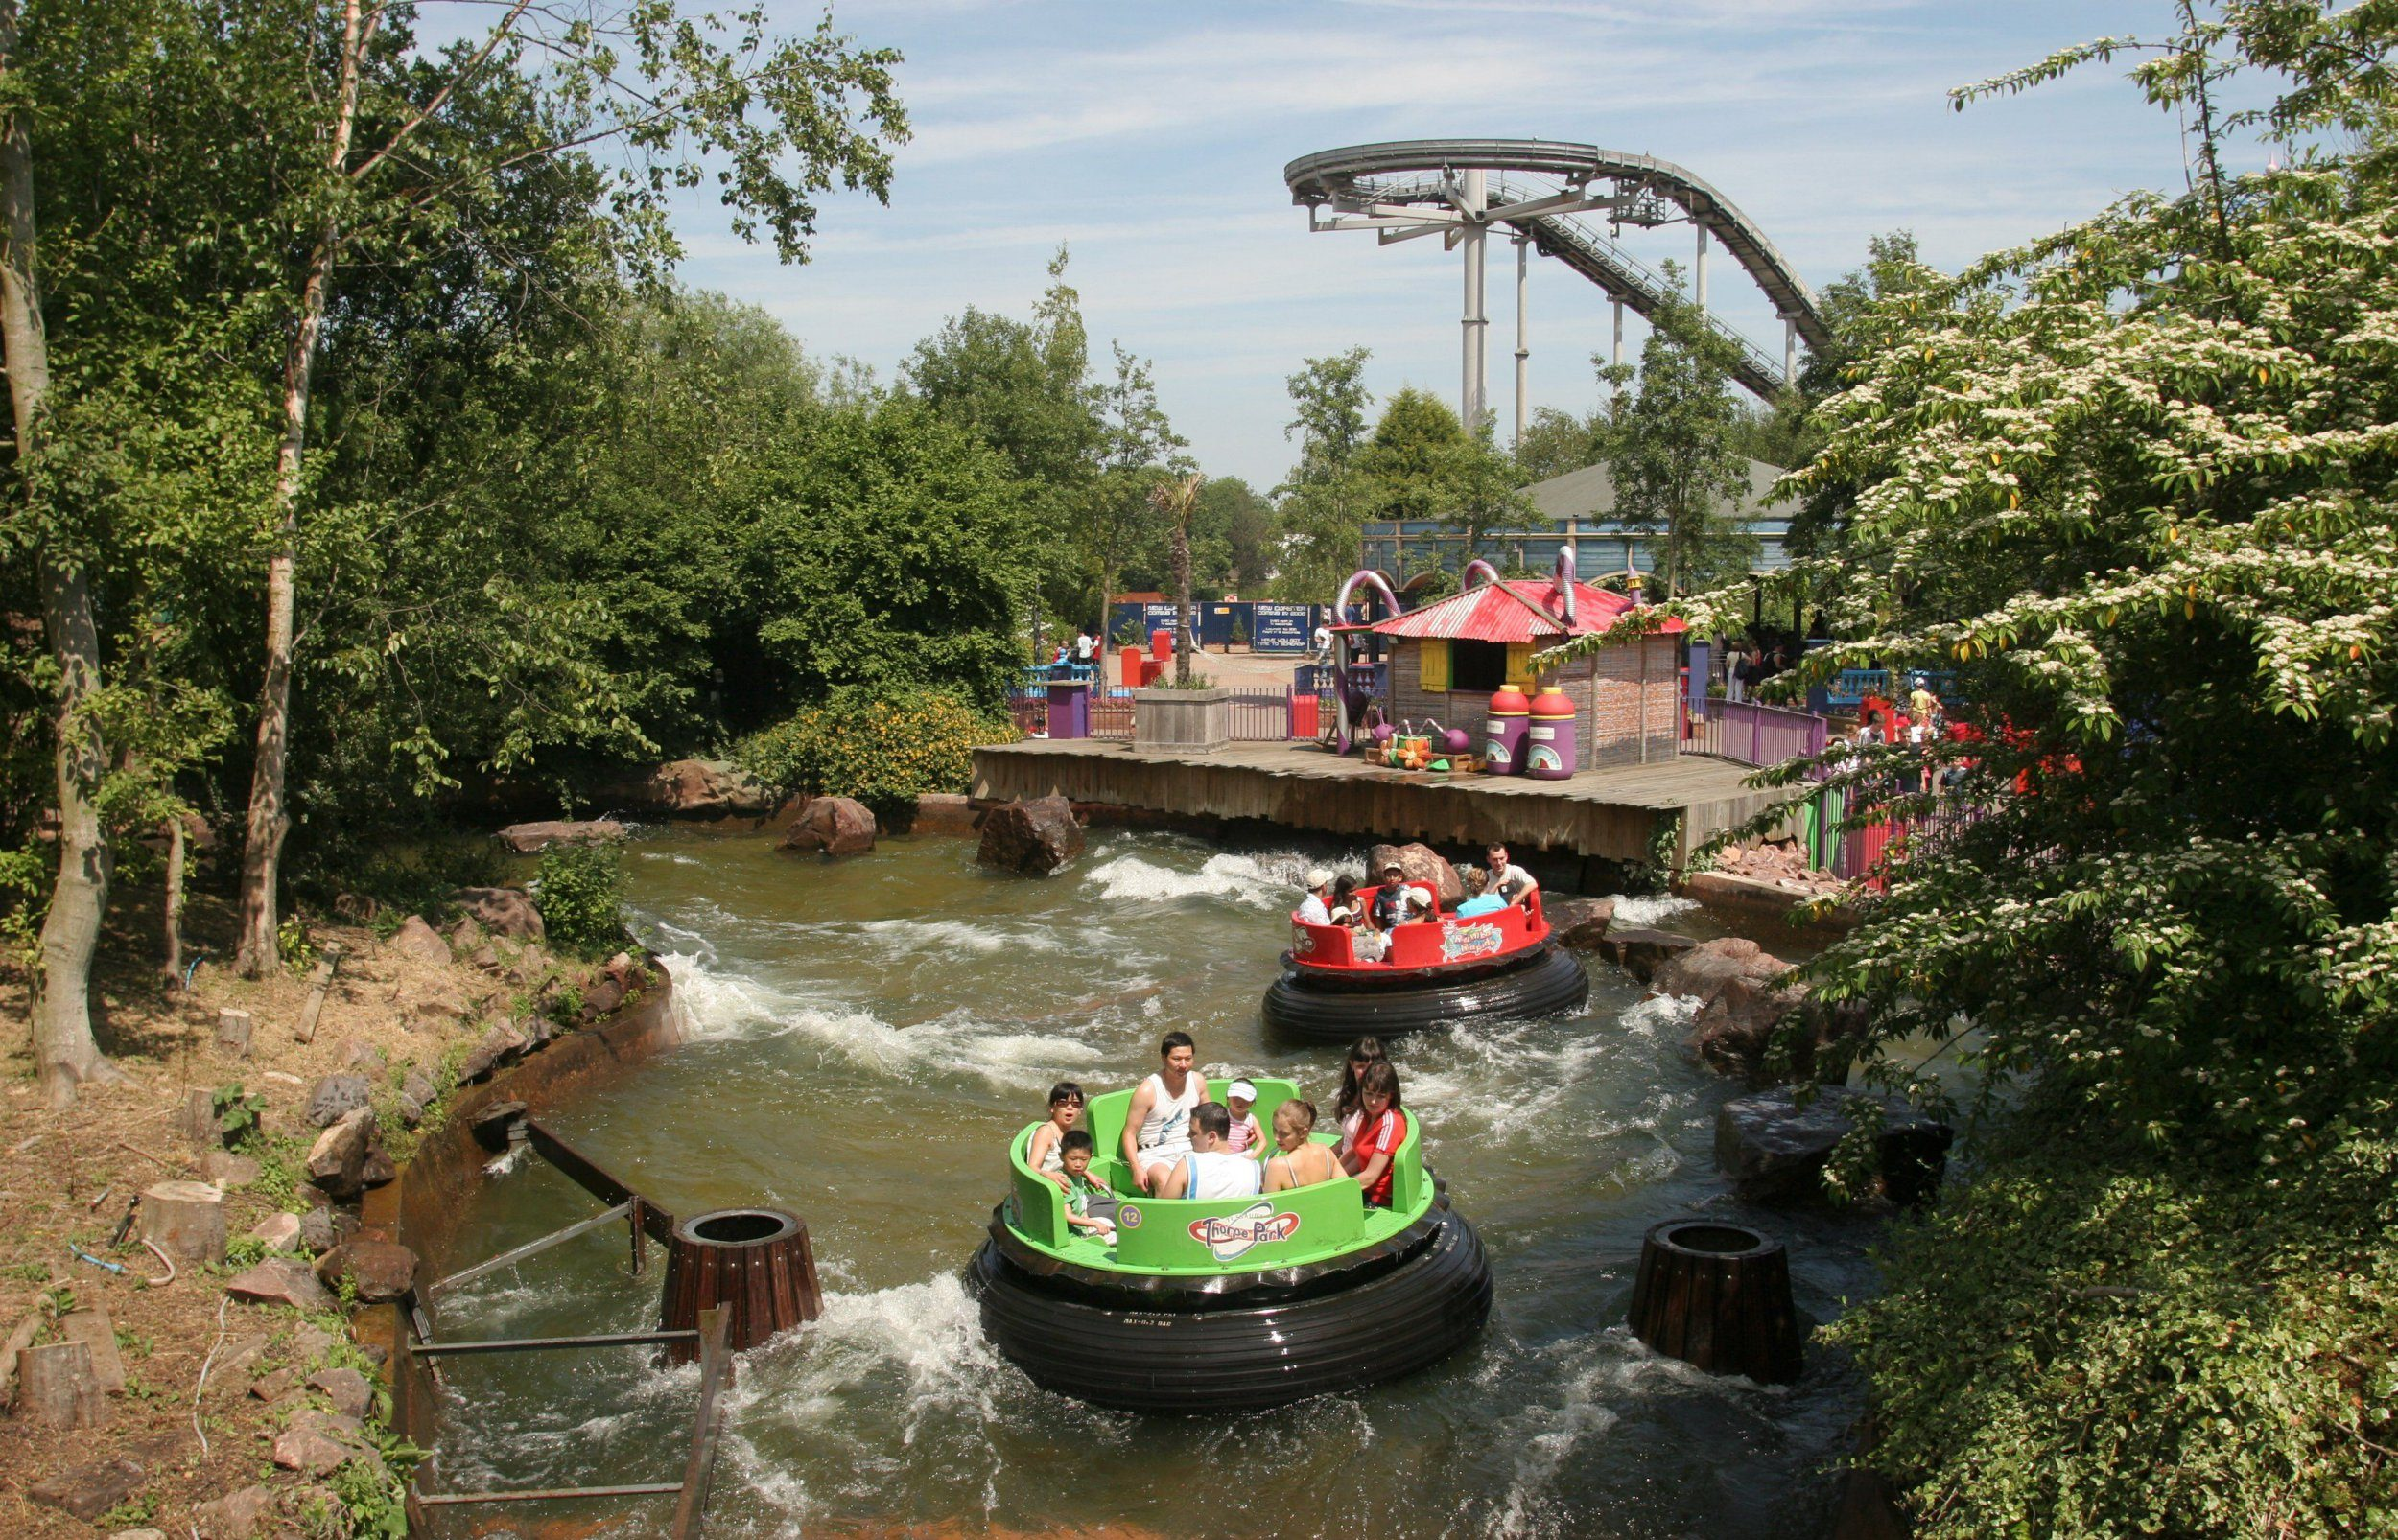 Thorpe Park closes water ride after girl died at Drayton Manor